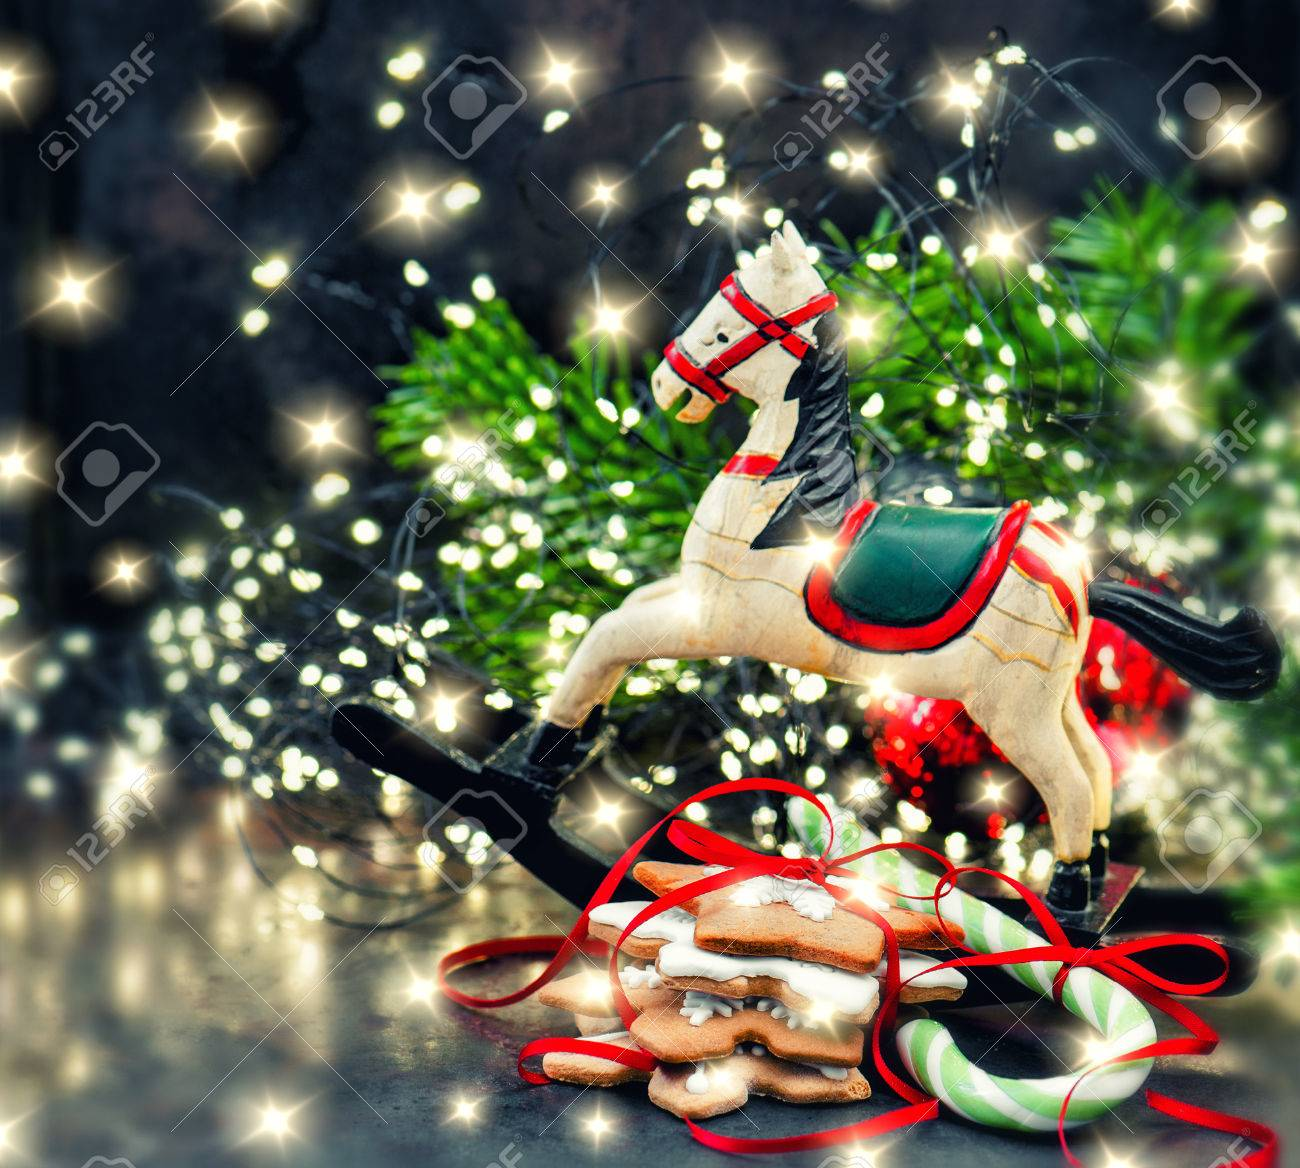 Christmas Lights Decoration Rocking Horse And Cookies Vintage Stock Photo Picture And Royalty Free Image Image 70506491